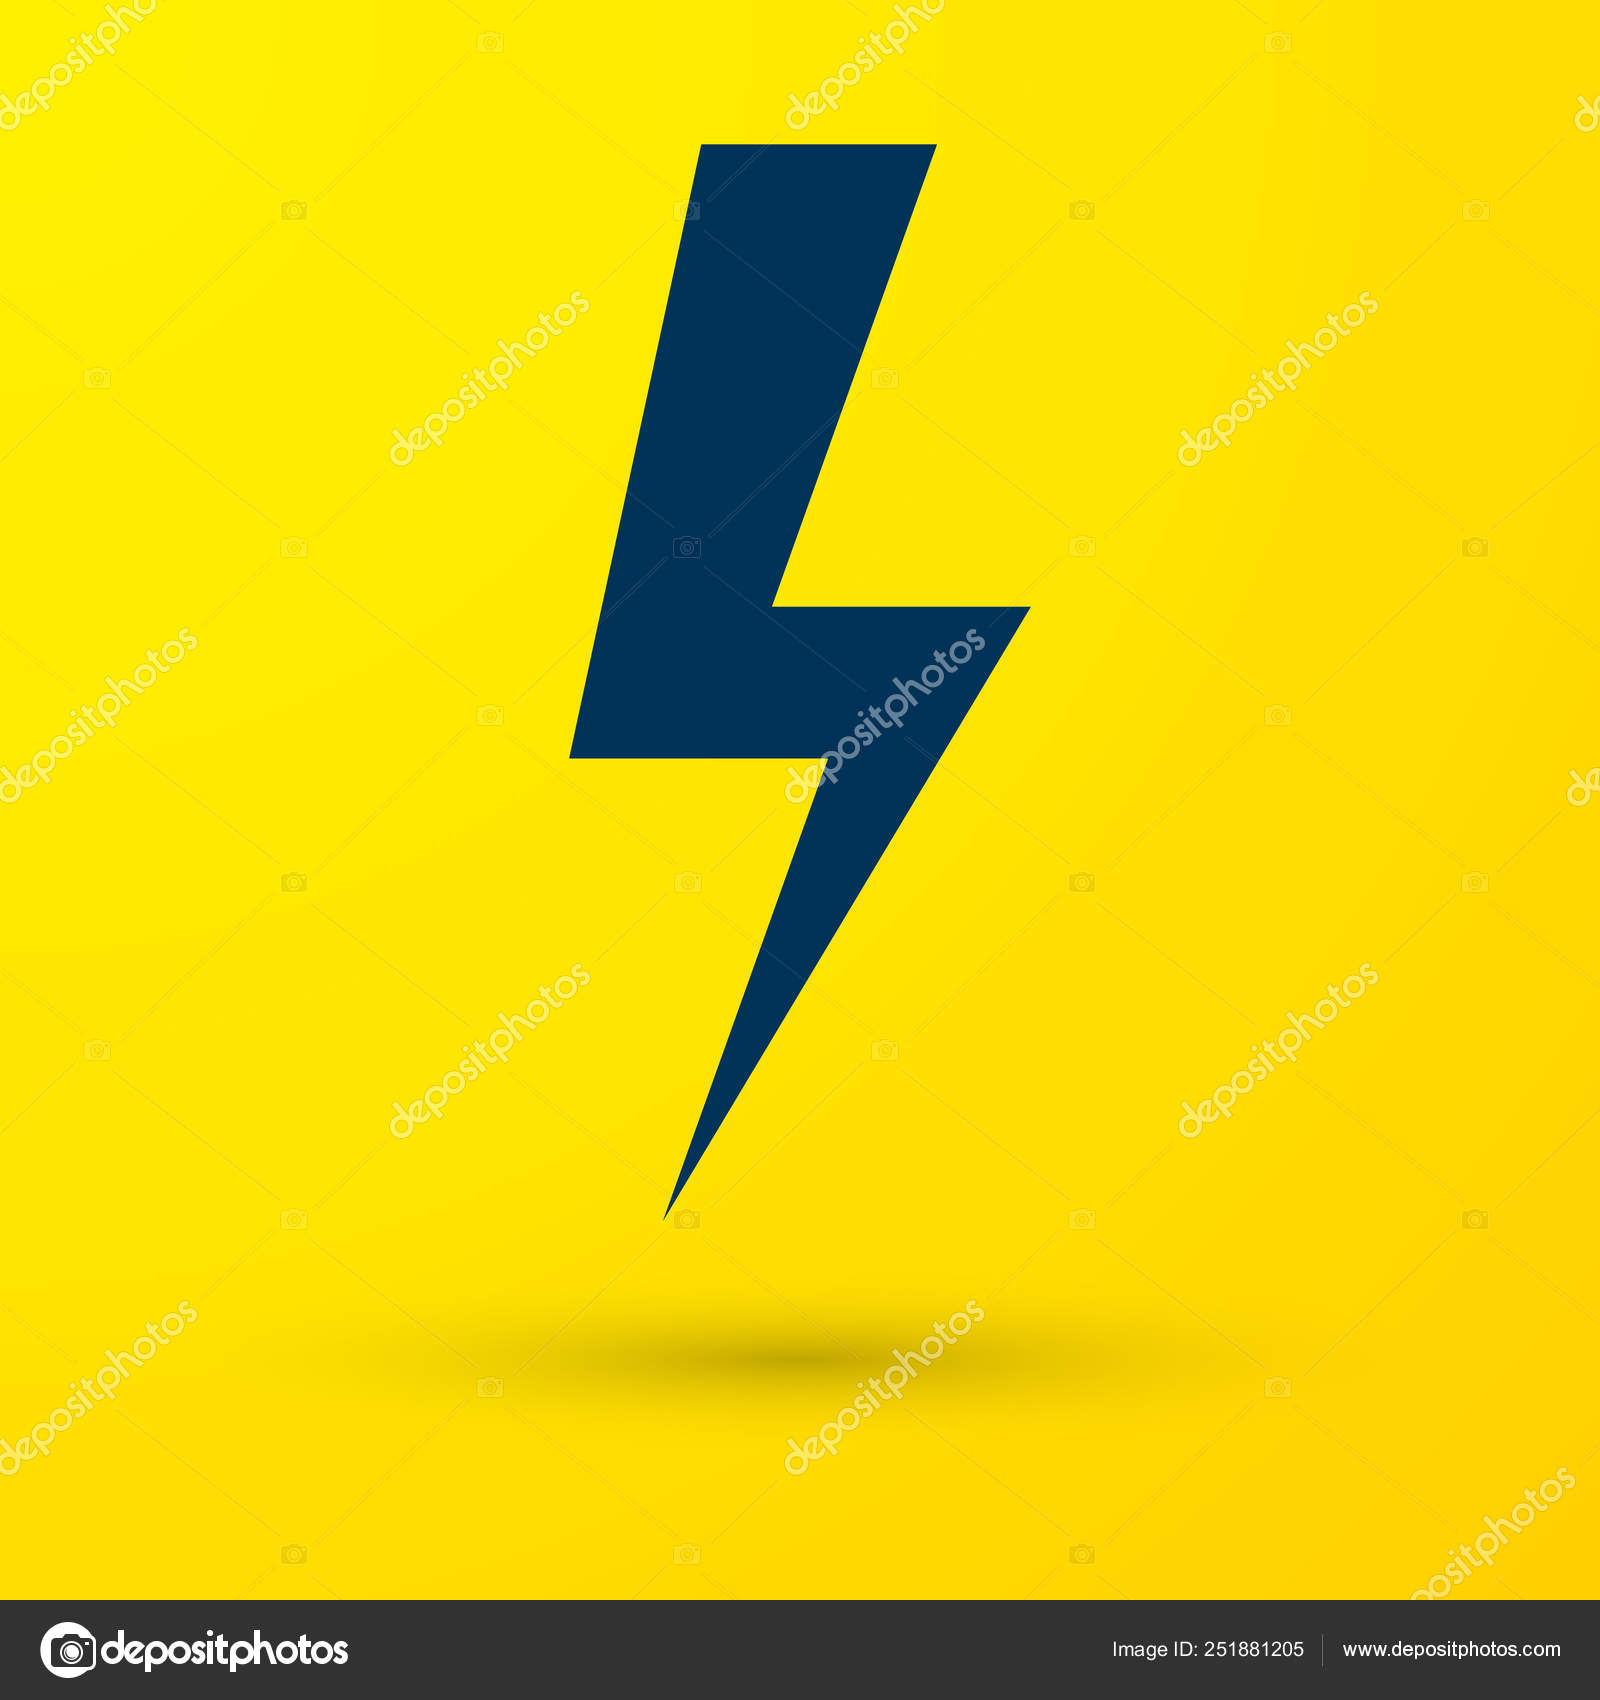 Blue Lightning Bolt Icon Isolated On Yellow Background Flash Icon Charge Flash Icon Thunder Bolt Lighting Strike Vector Illustration Stock Vector C Vectorvalera Gmail Com 251881205